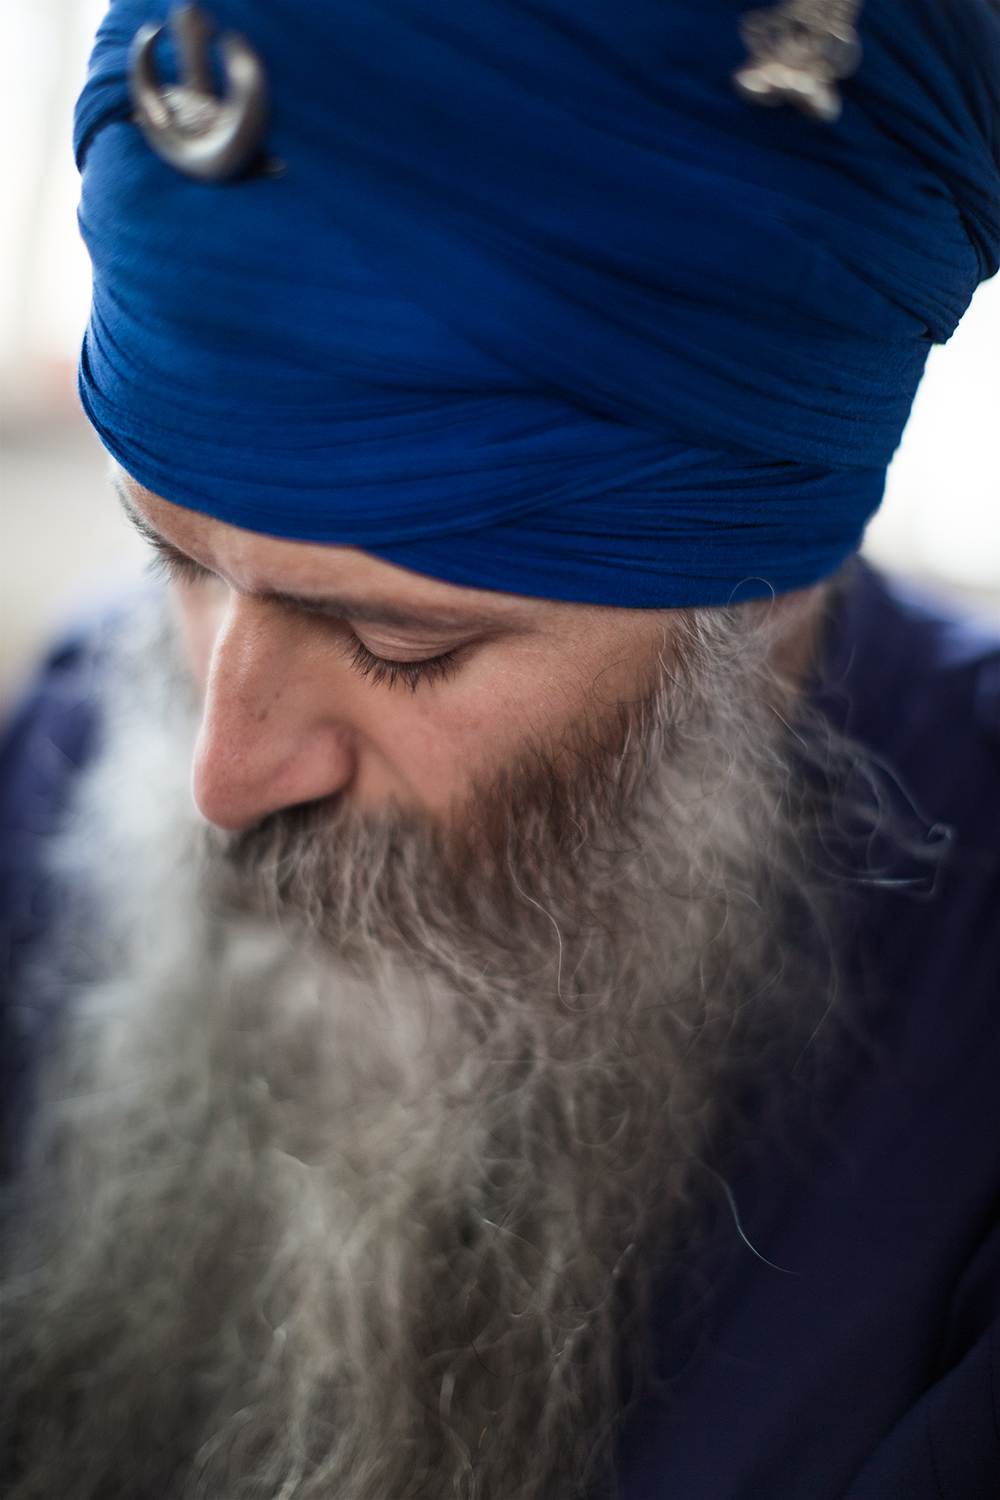 Event documentation of Sacred indian Degh Ceremony with Kamalroop Singh at UHU Berlin by Berlin based Portrait photographer Caroline Wimmer